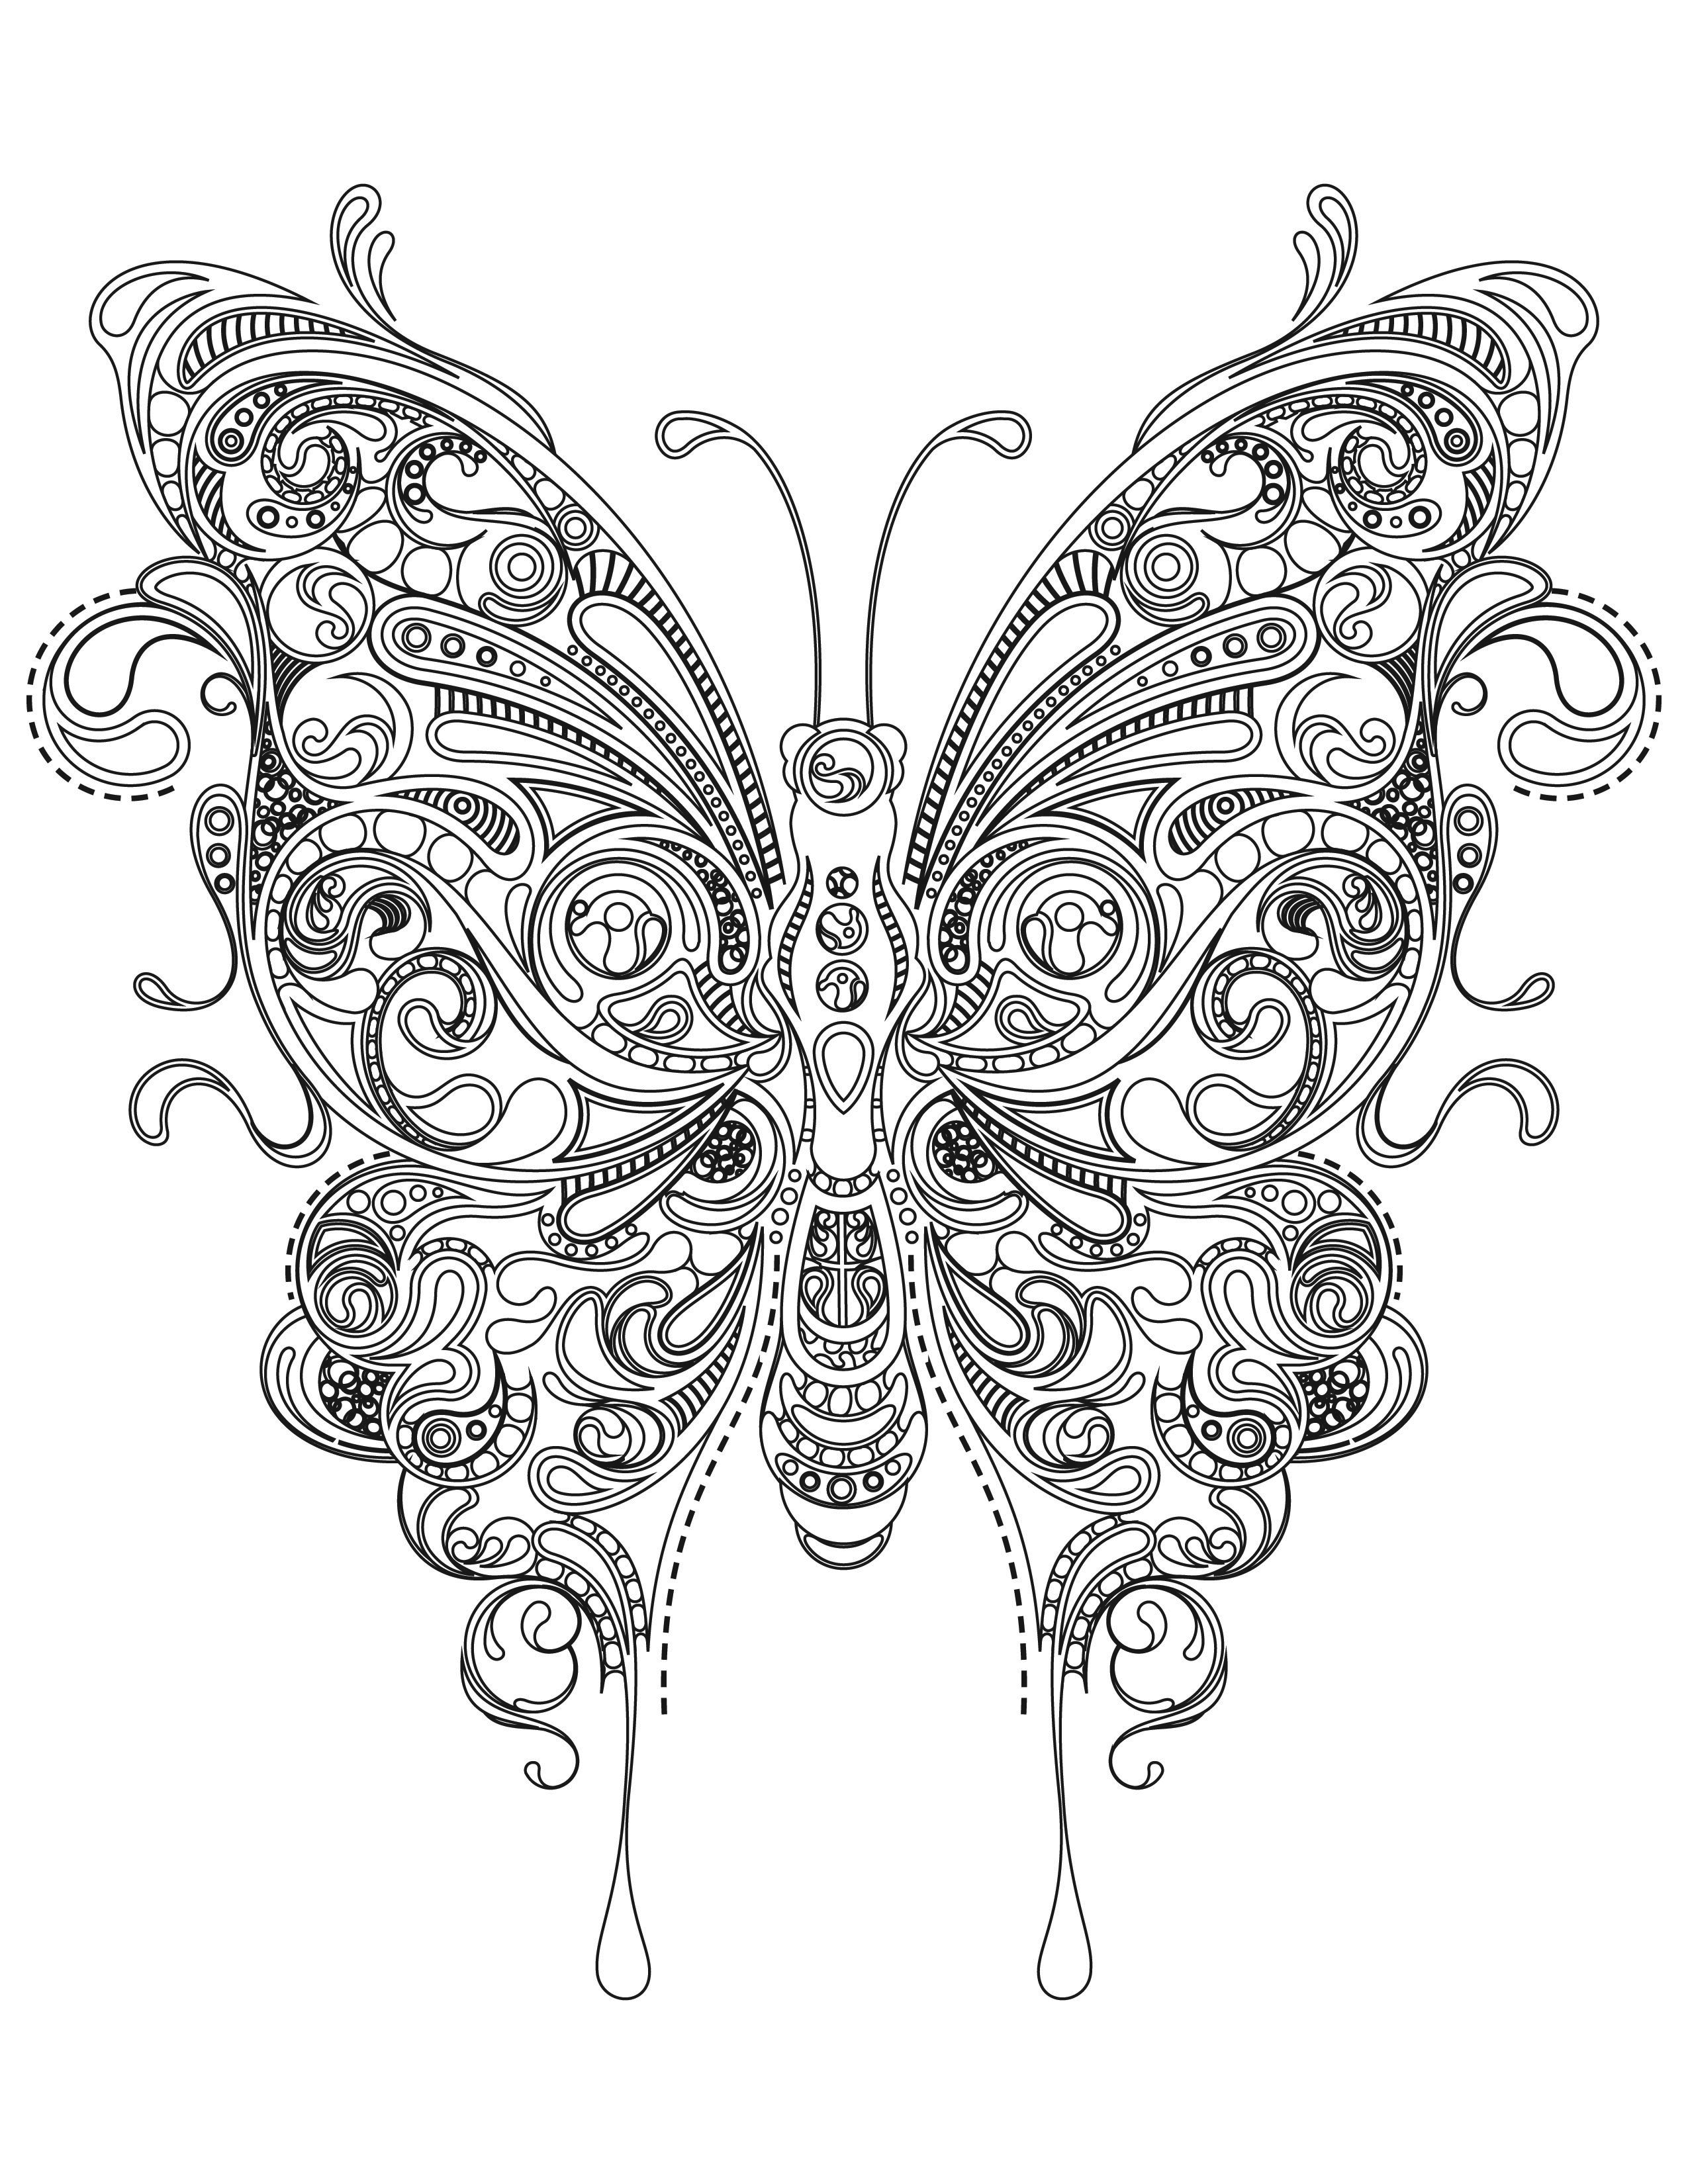 butterfly coloring sheets butterfly coloring pages for adults best coloring pages butterfly coloring sheets